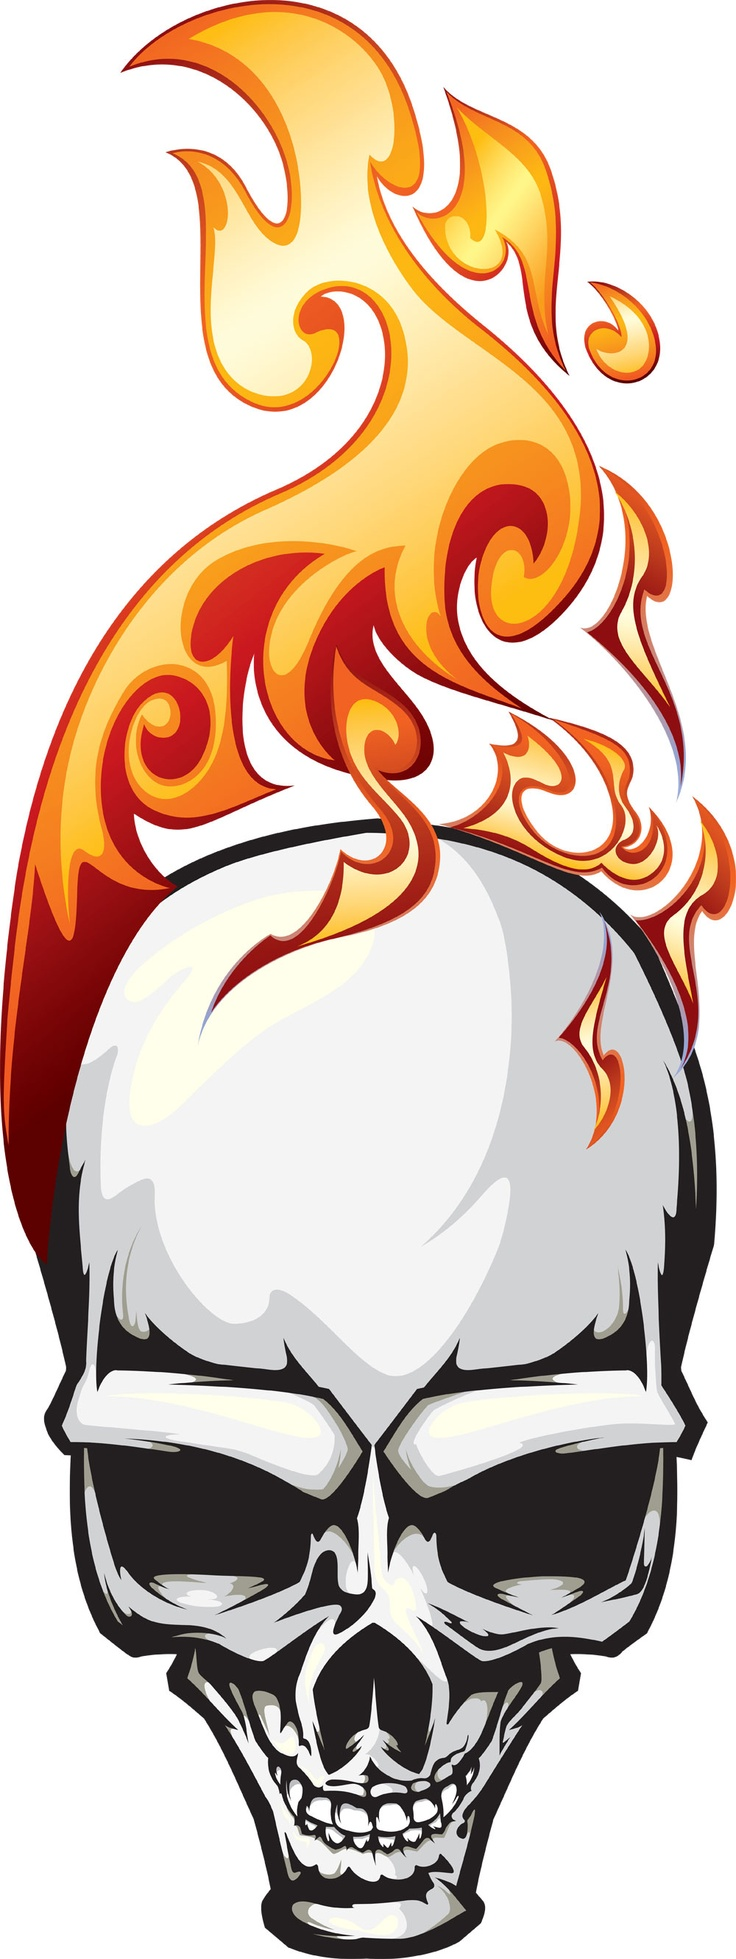 Flaming skull - Original is a vector